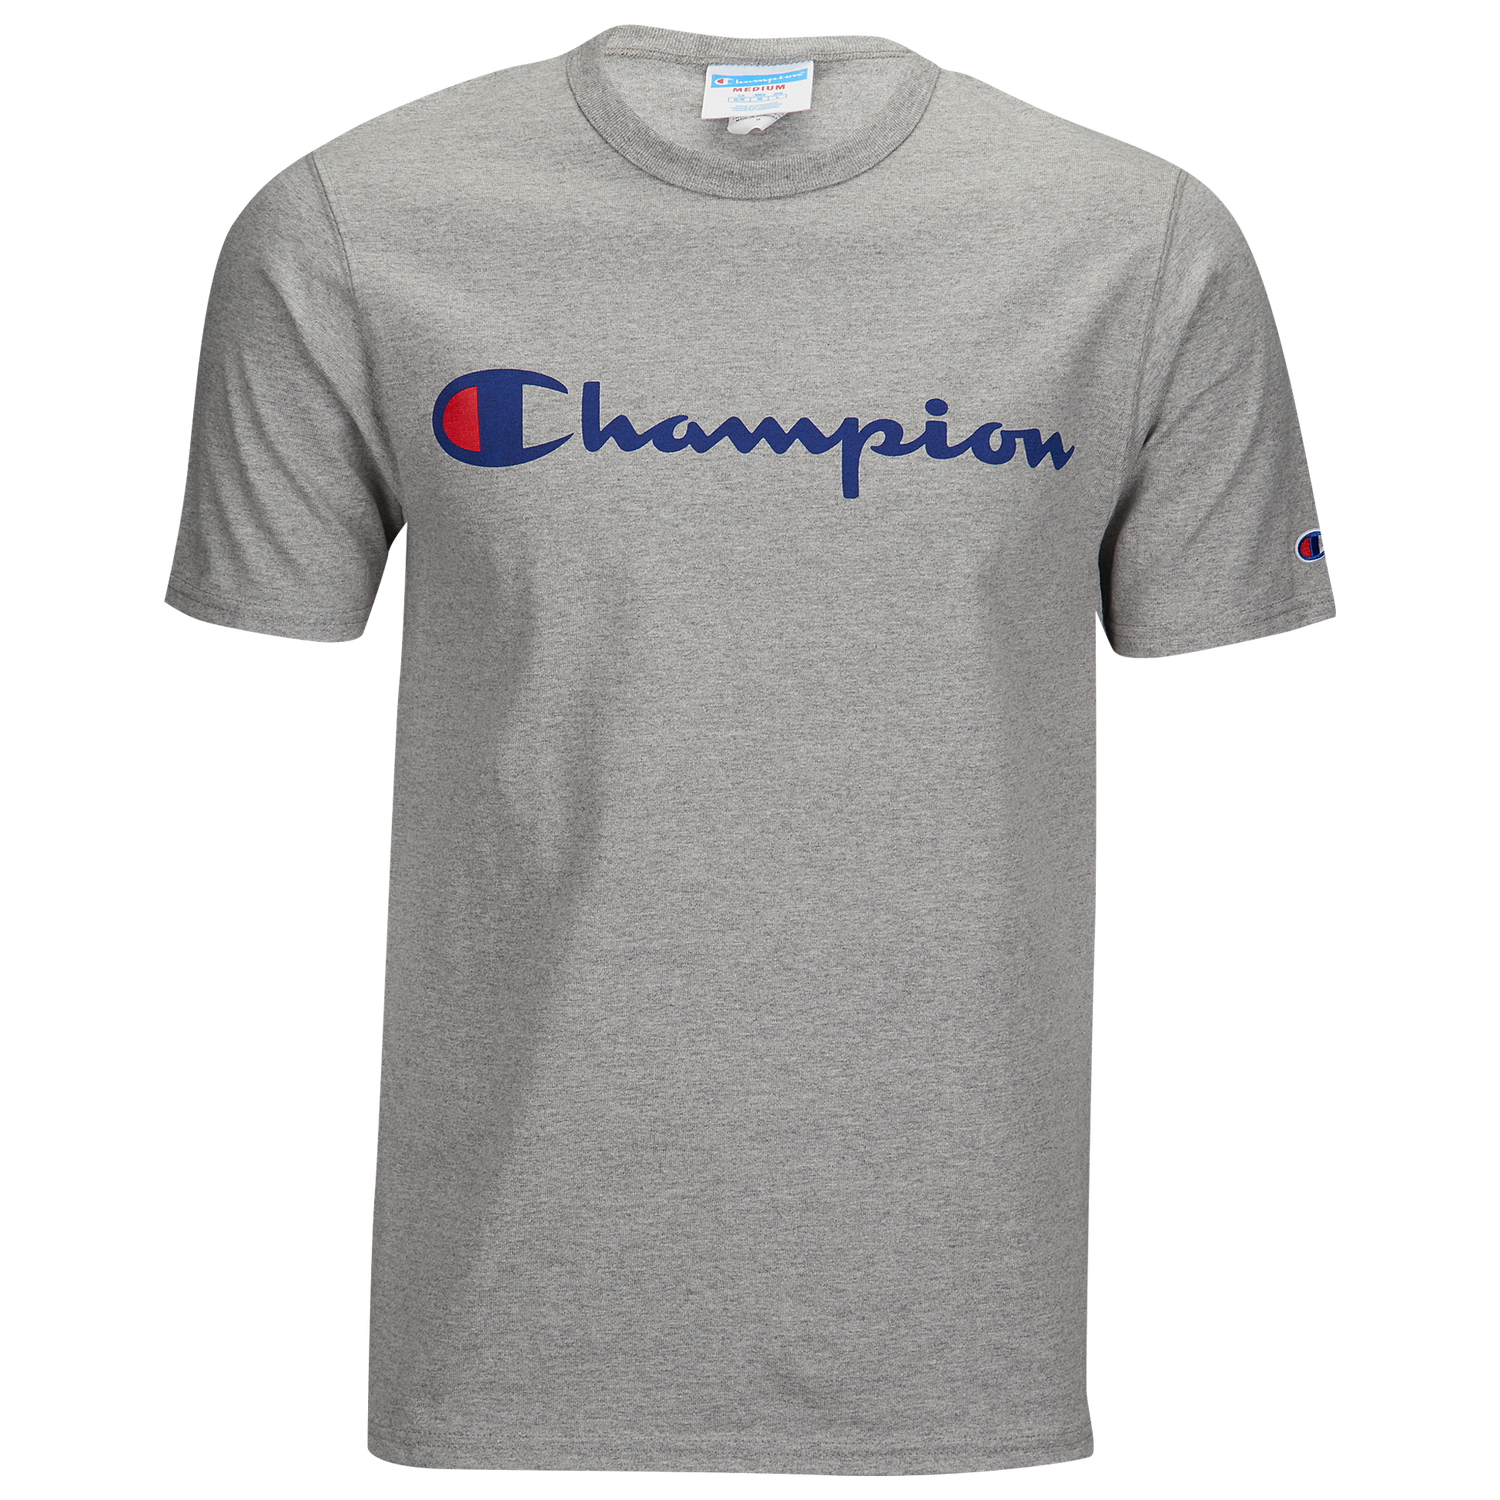 Champion Heritage Graphic Short Sleeve T-Shirt - Men's Casual - Oxford Grey C1800604